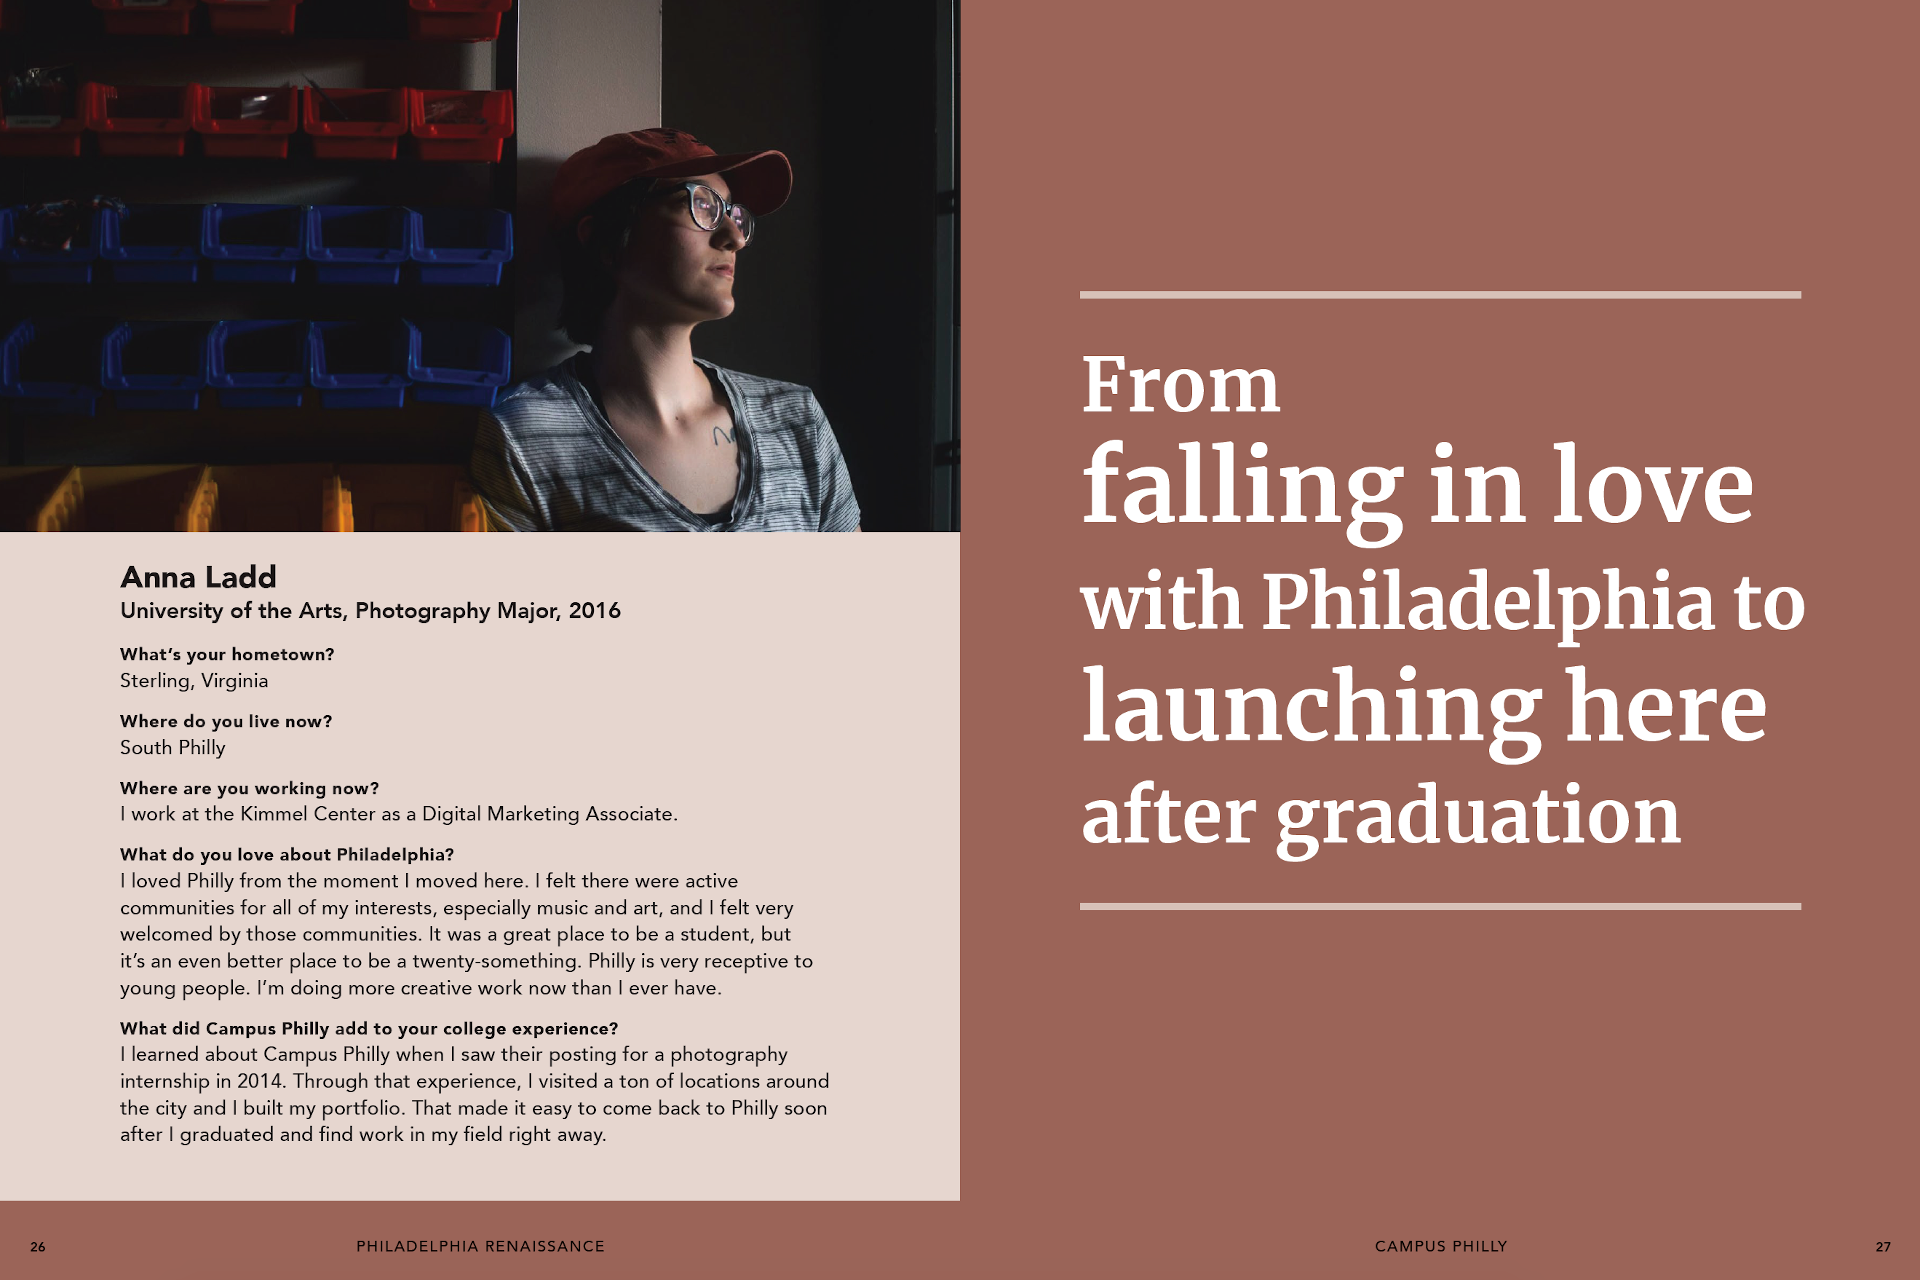 From falling in love woth Philadelphia to launching here after graduation